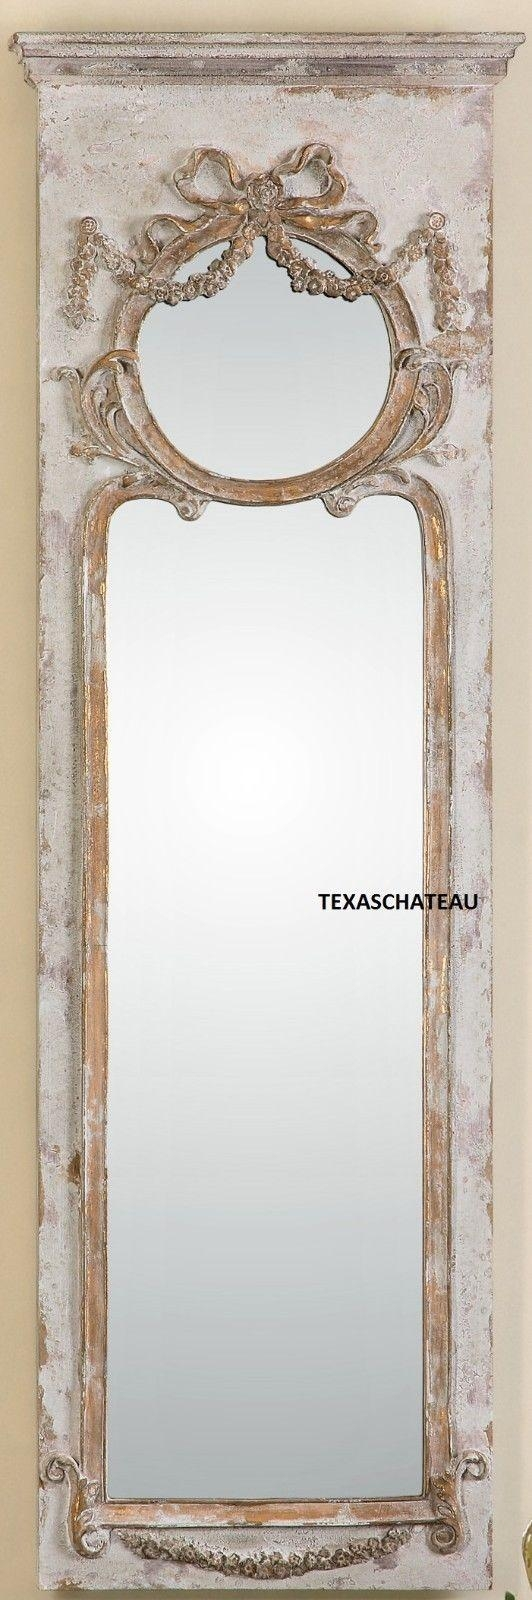 Large Ornate French Antique Cream Gold Trumeau Mirror Dressing Within Antique Cream Mirror (Image 14 of 20)